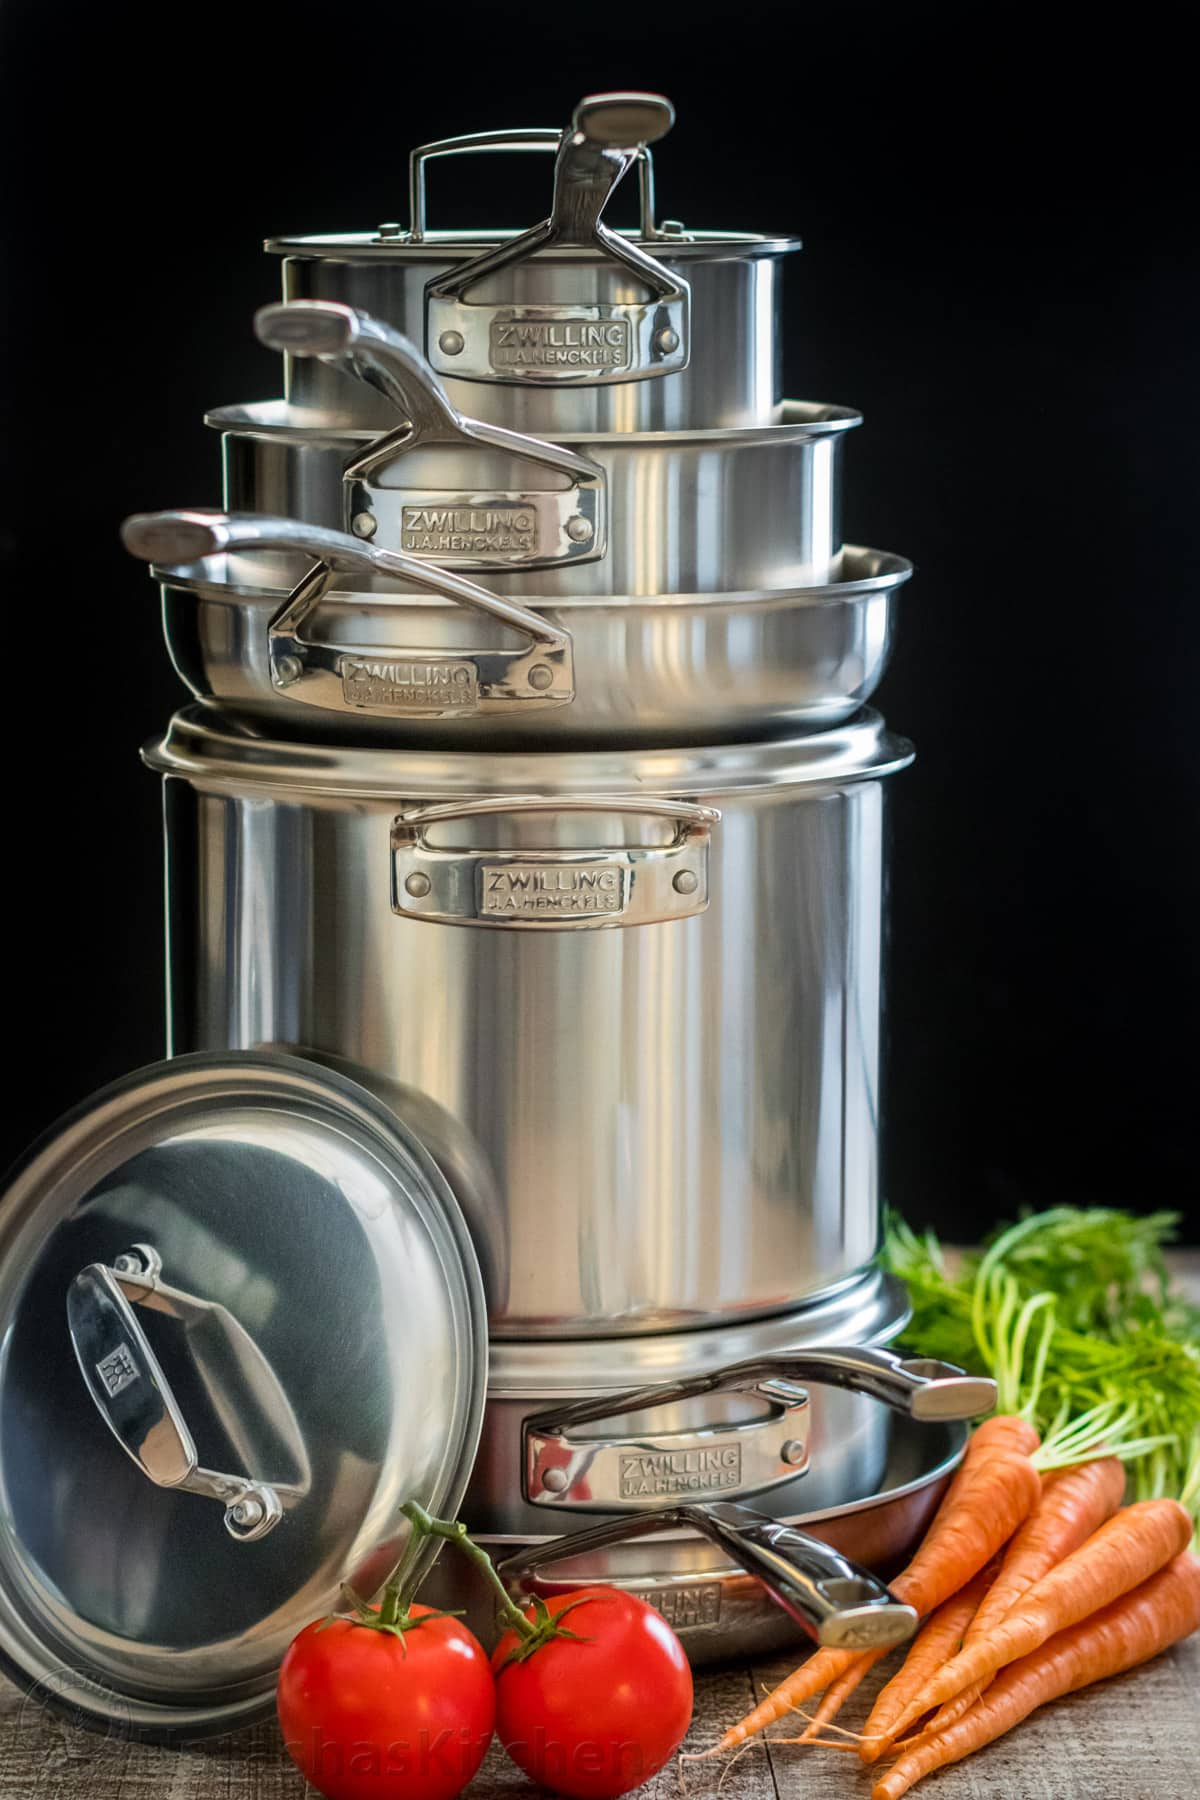 Win This Zwilling J A Henckels 10 Piece Cookware